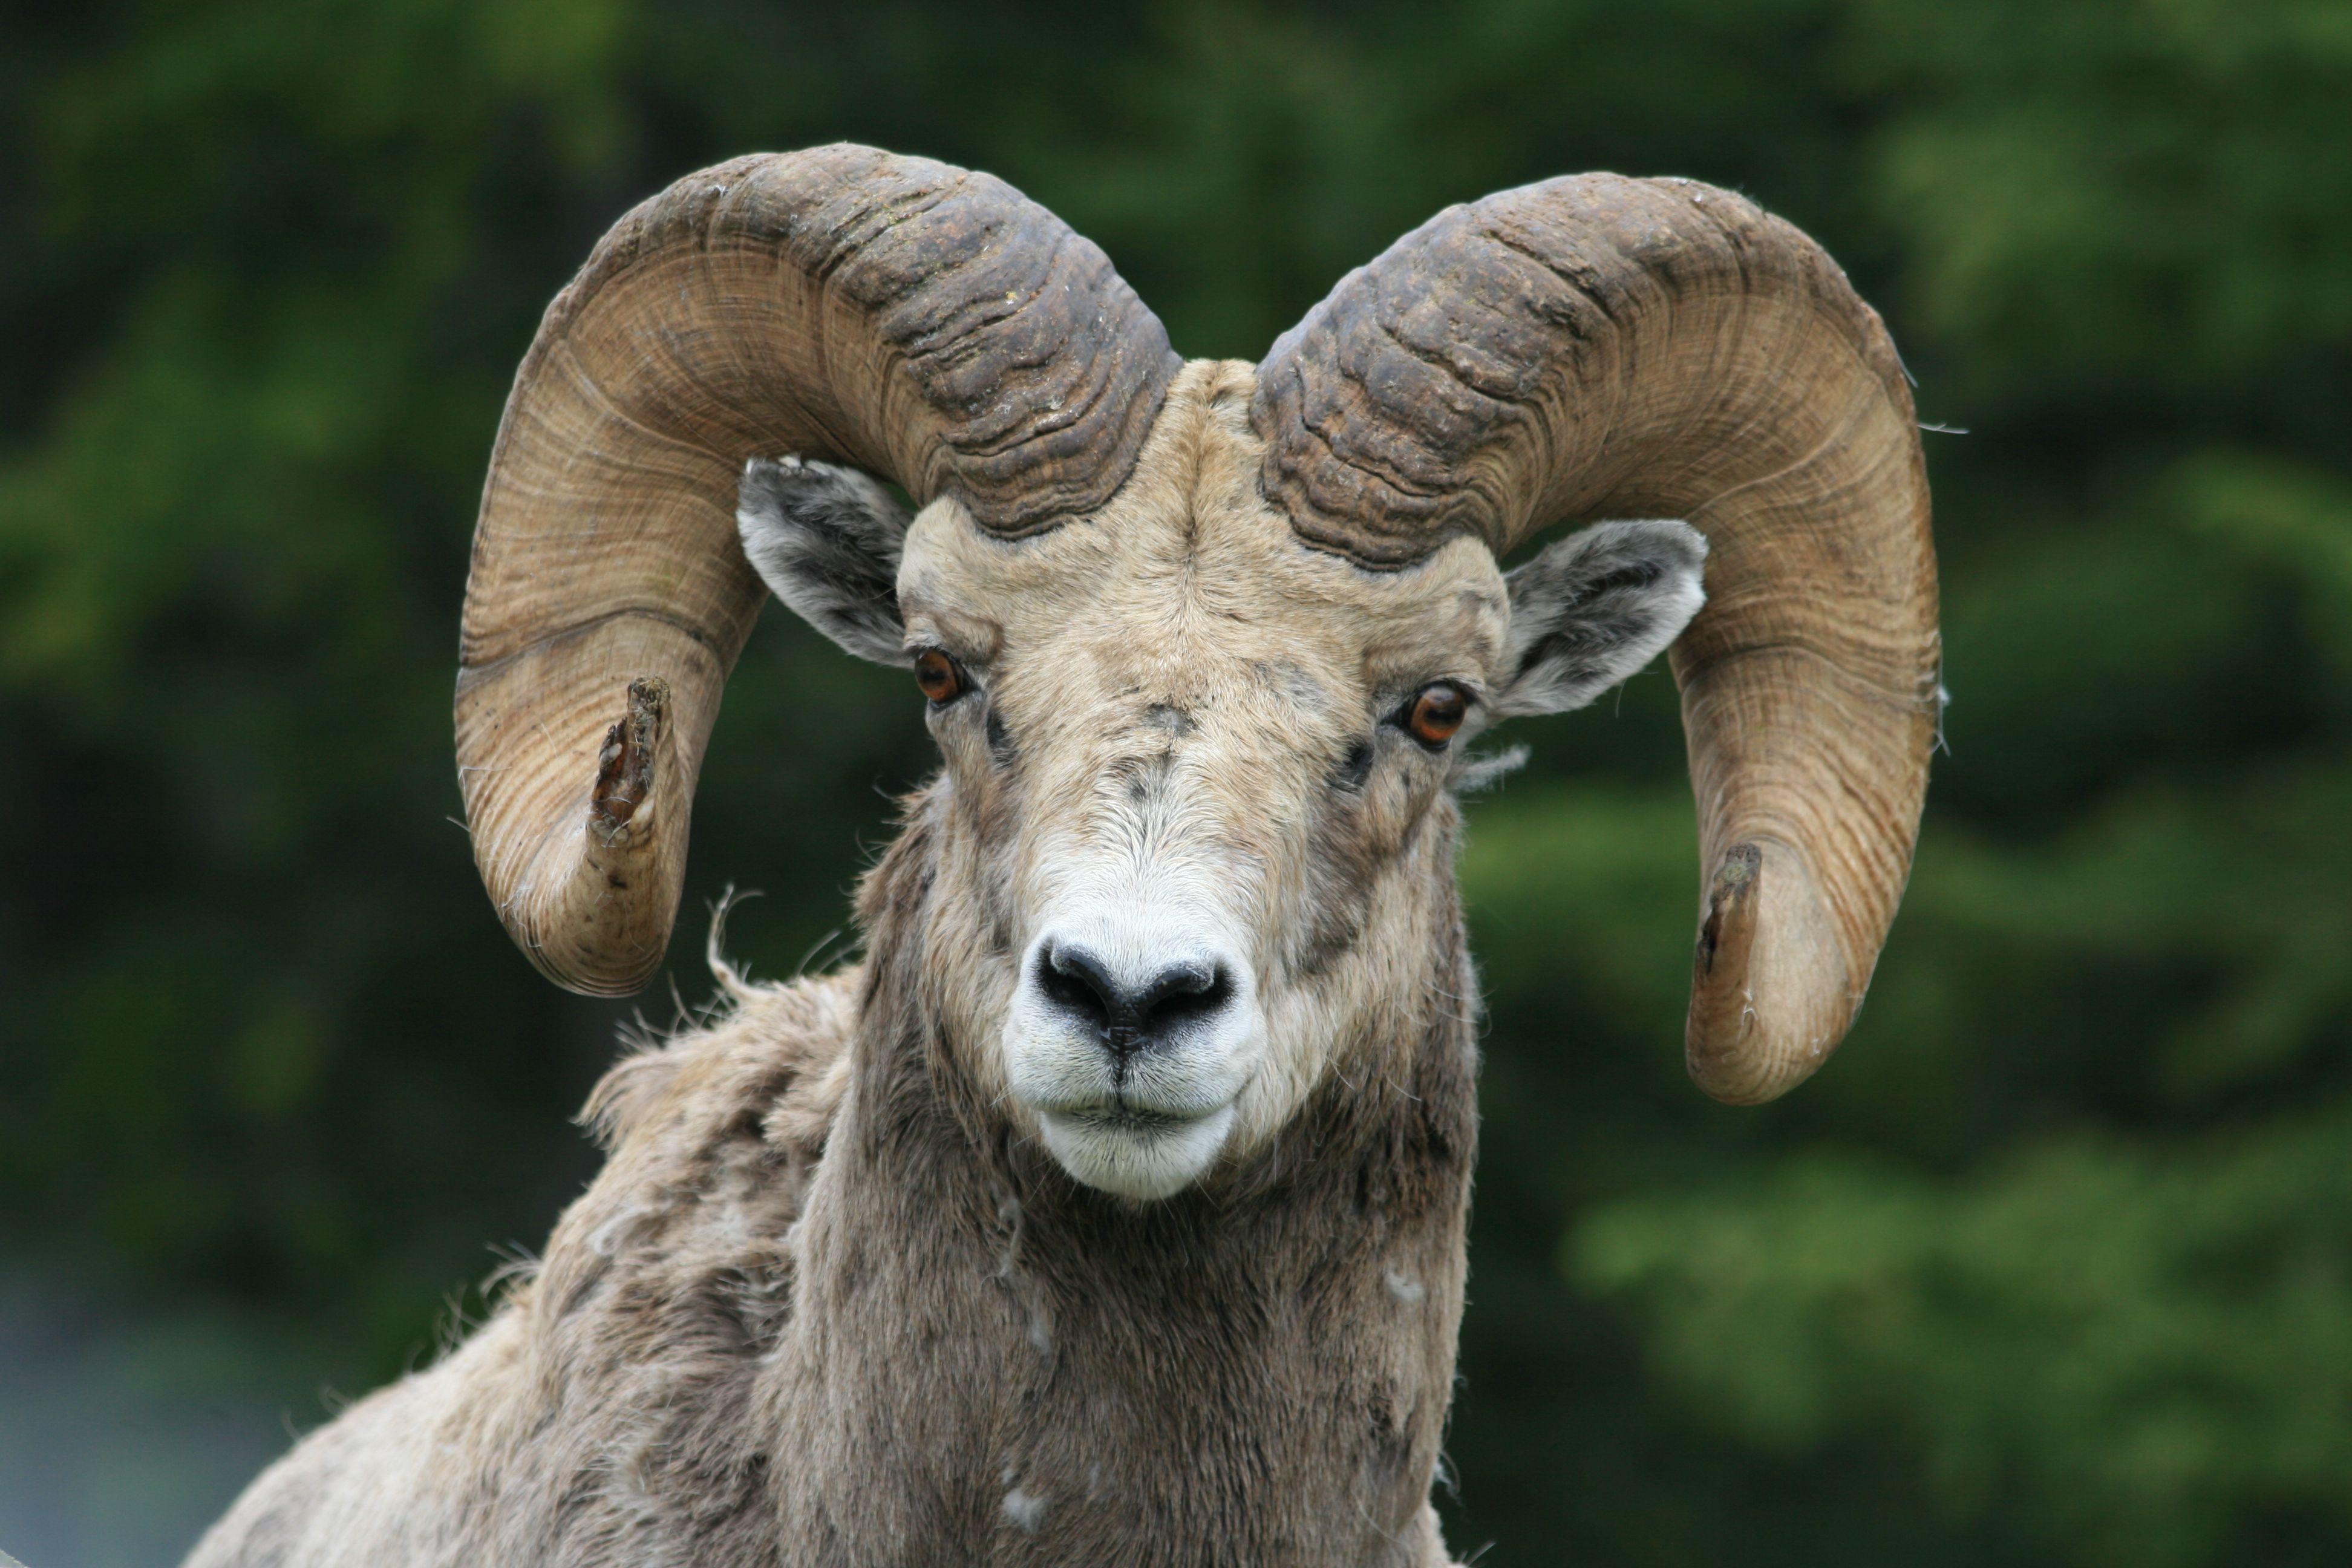 Long horn sheep..these animals are spectacular in their